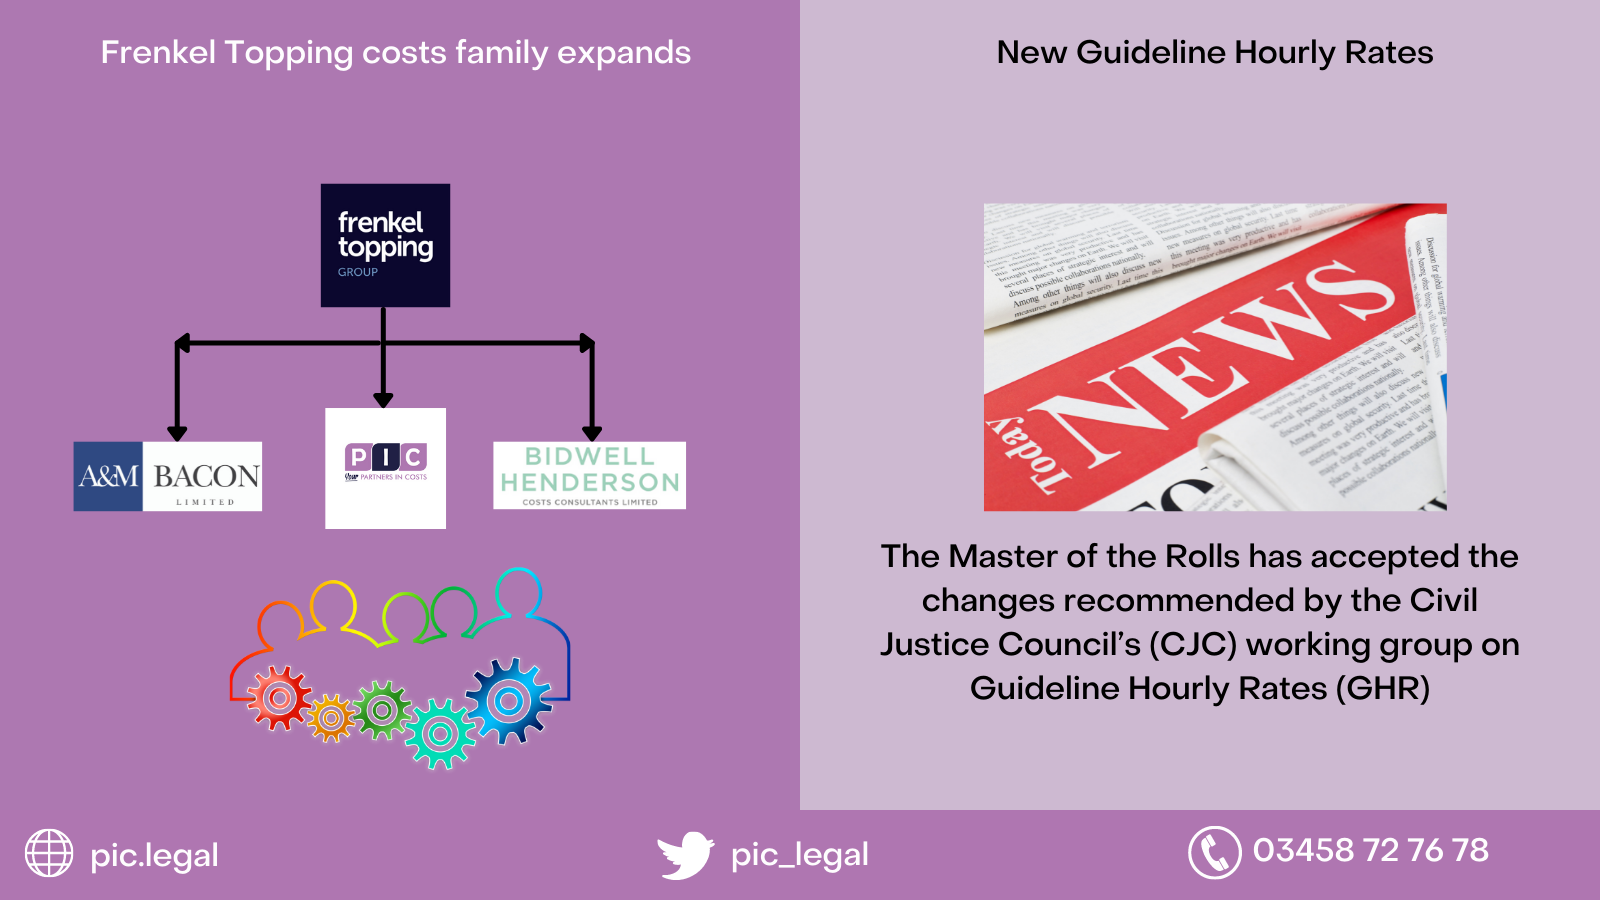 New Guideline Hourly Rates and PIC has a new addition to the family